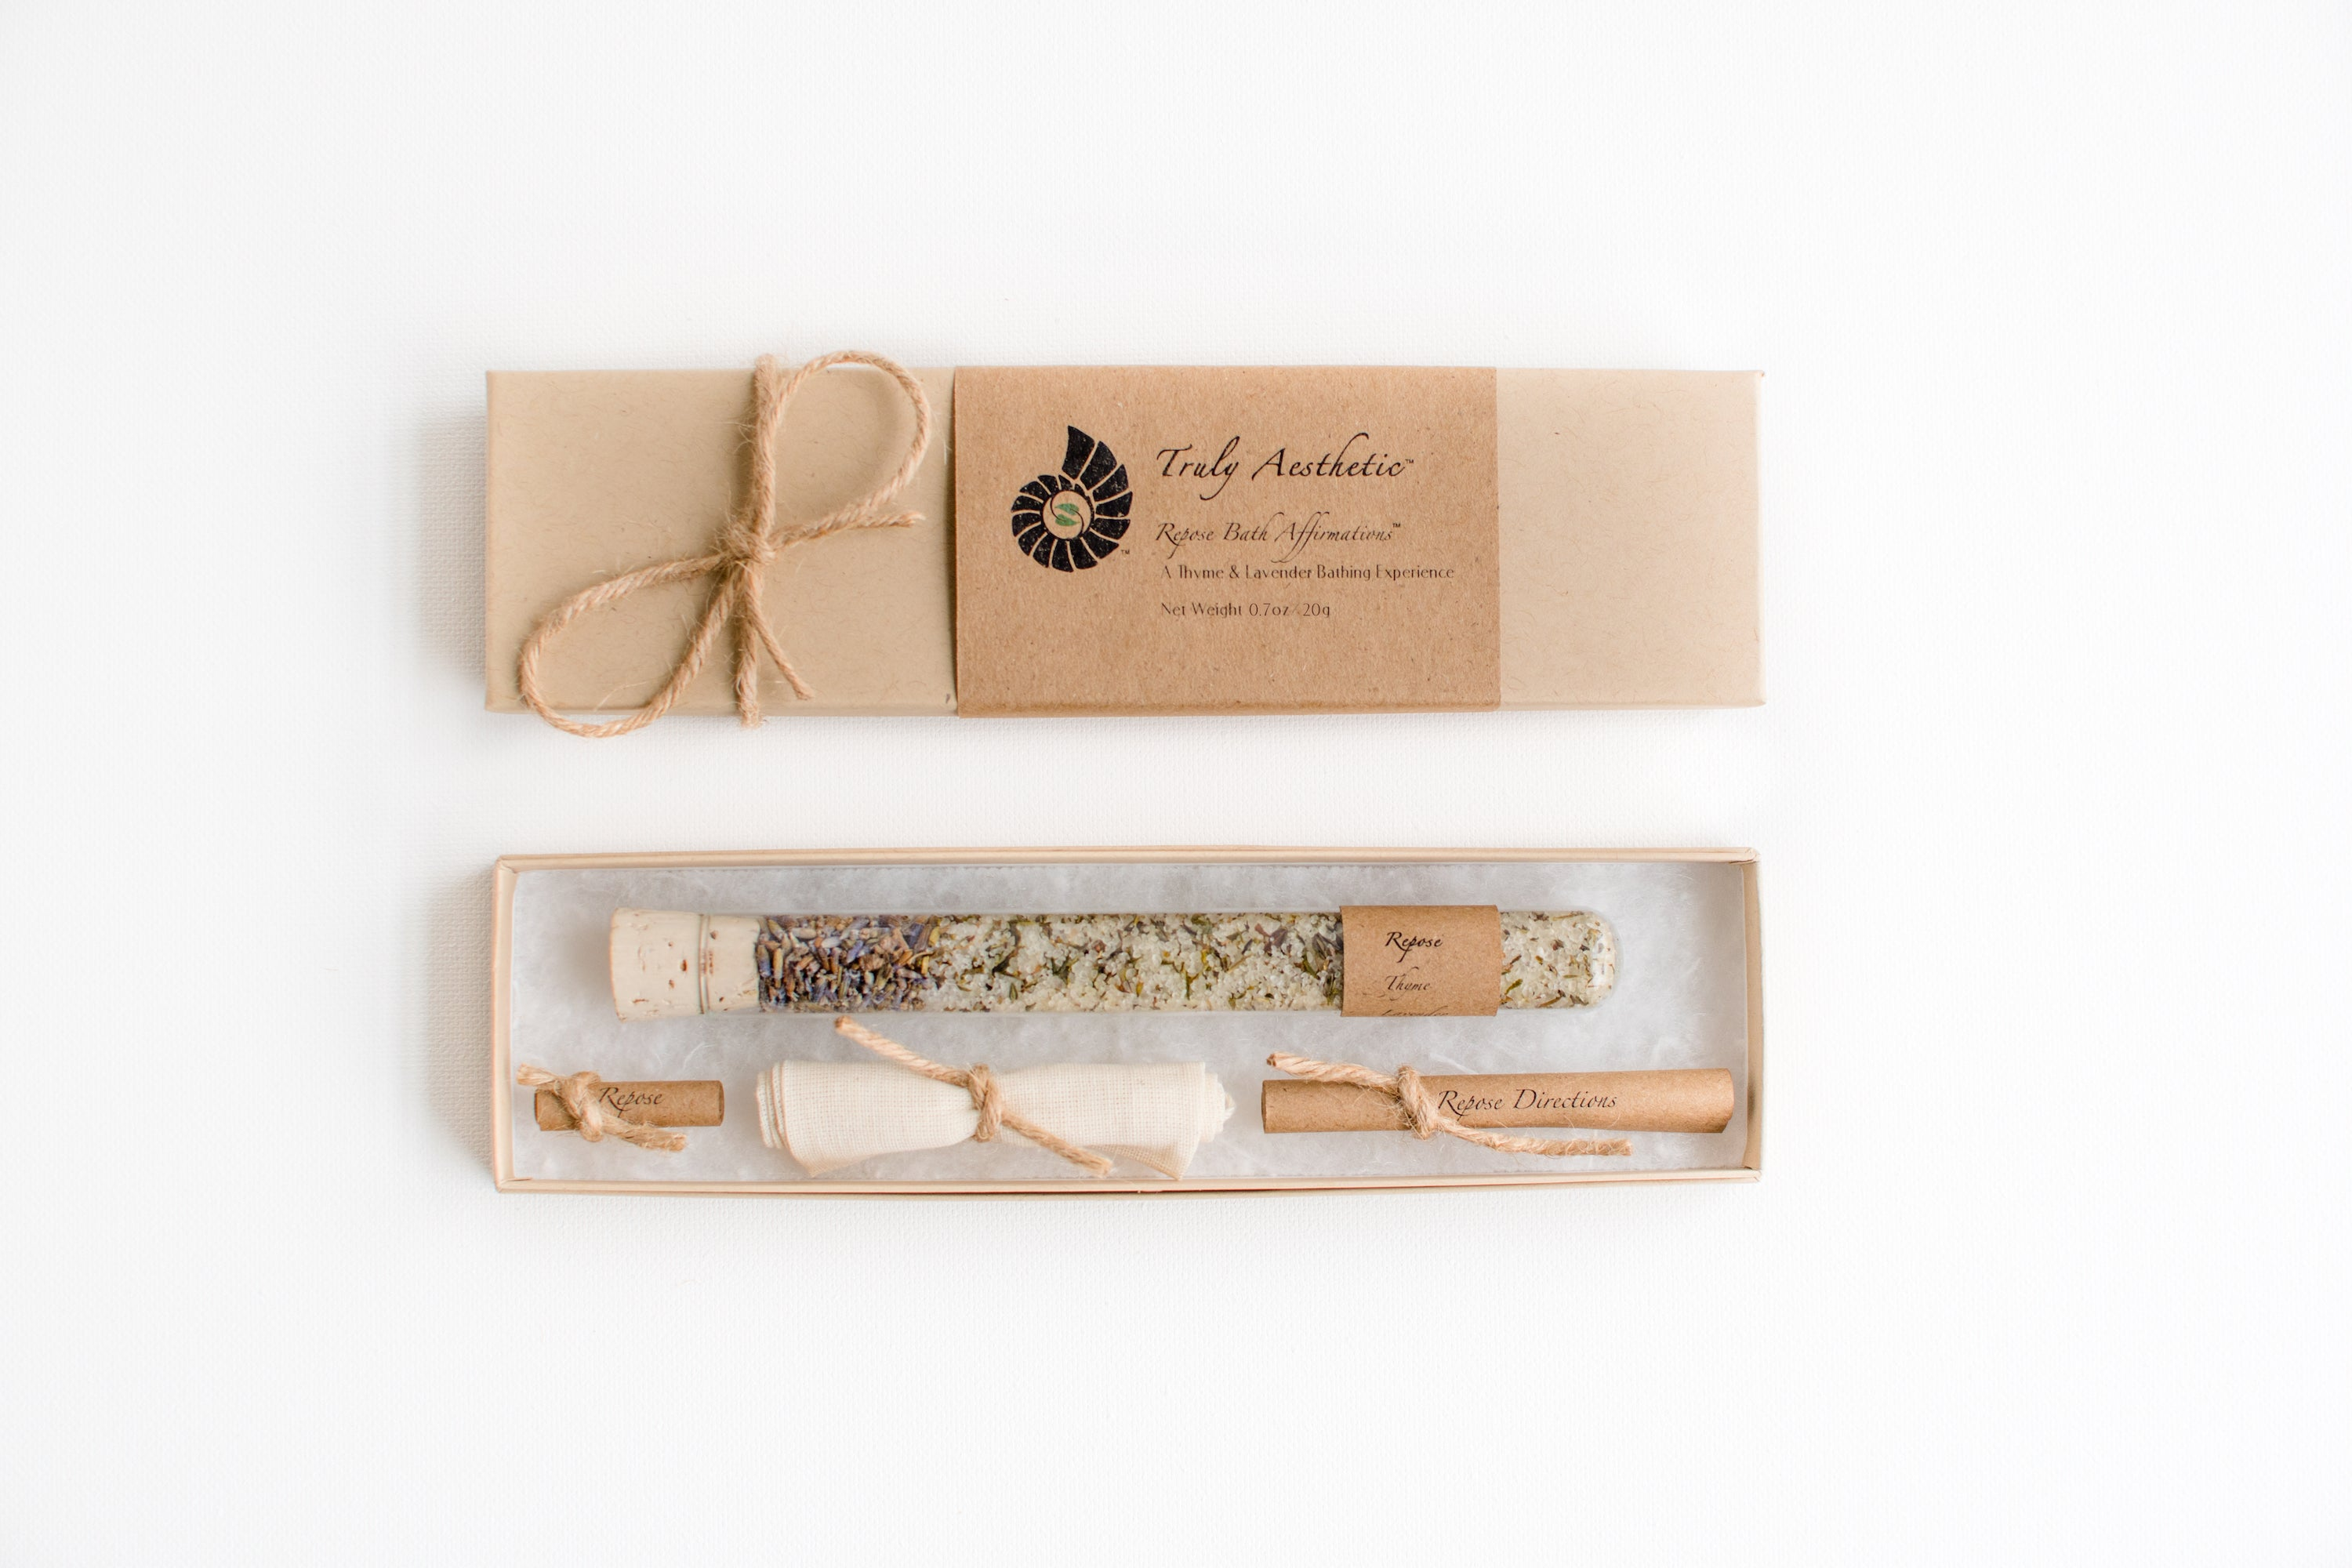 Truly Aesthetic Repose Thyme Lavender Petite Bath Affirmations Bath Salts Gift Box Set Packaging